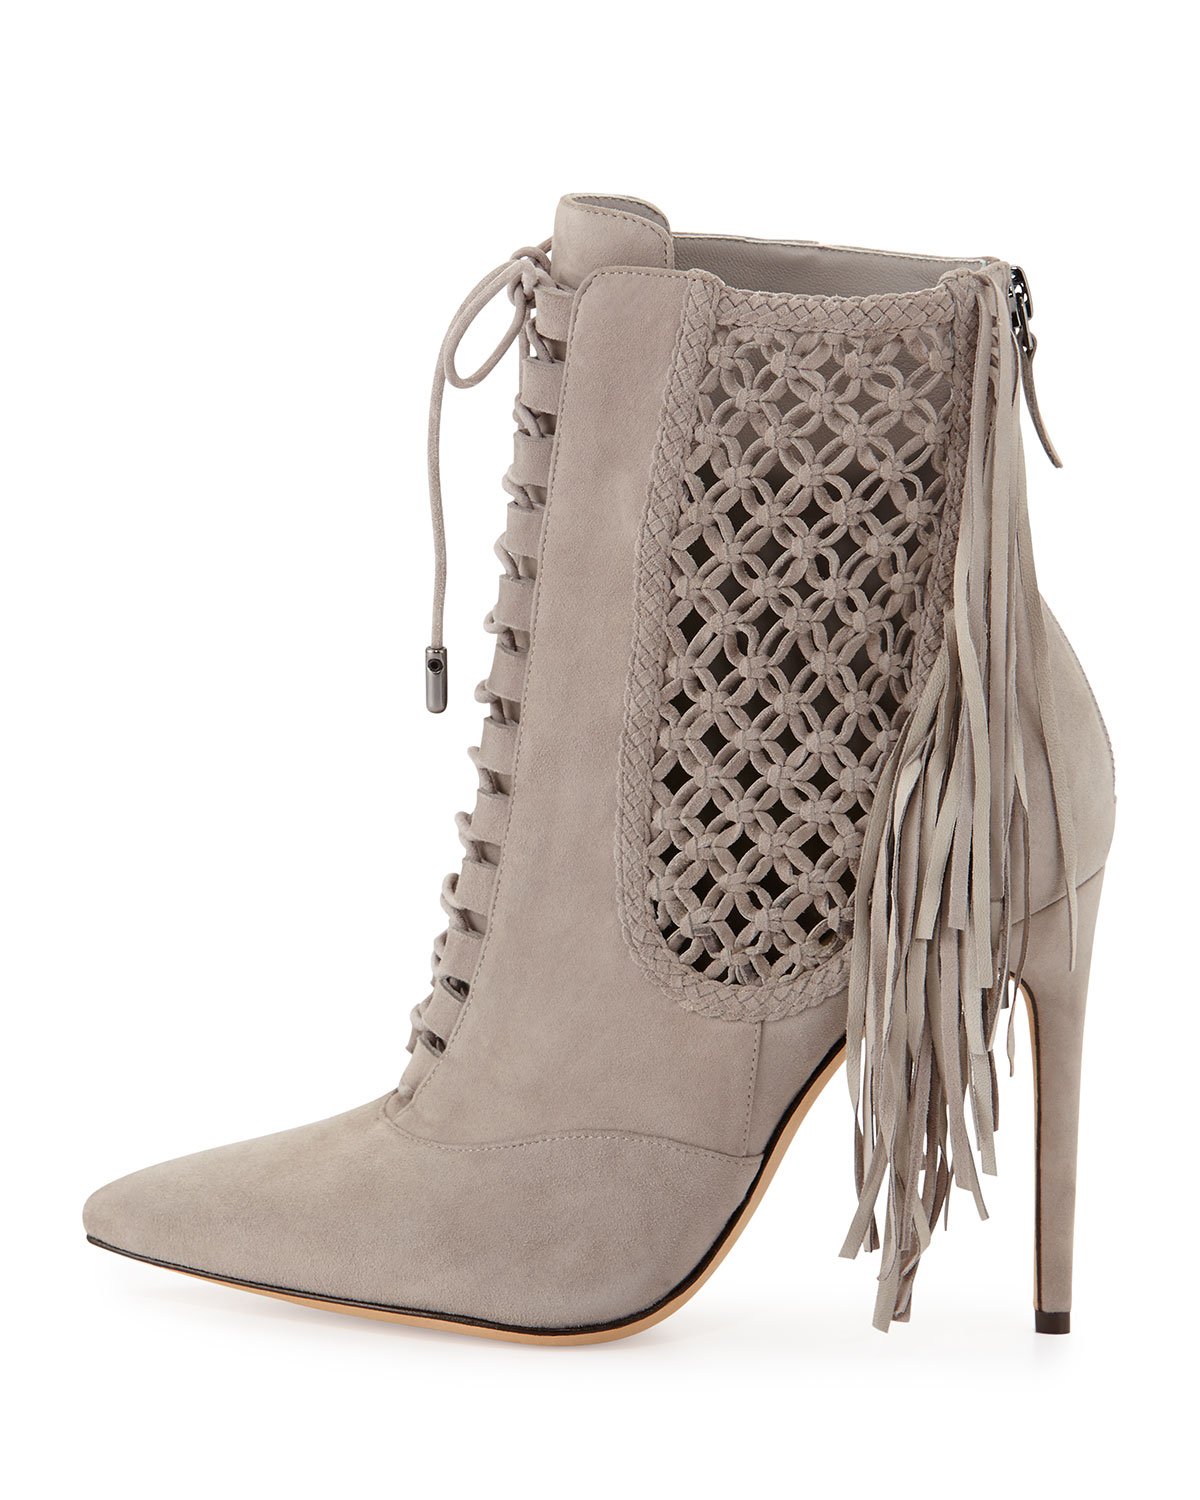 Alexandre birman Suede Fringe Lace-up Point-toe Ankle Bootie in ...